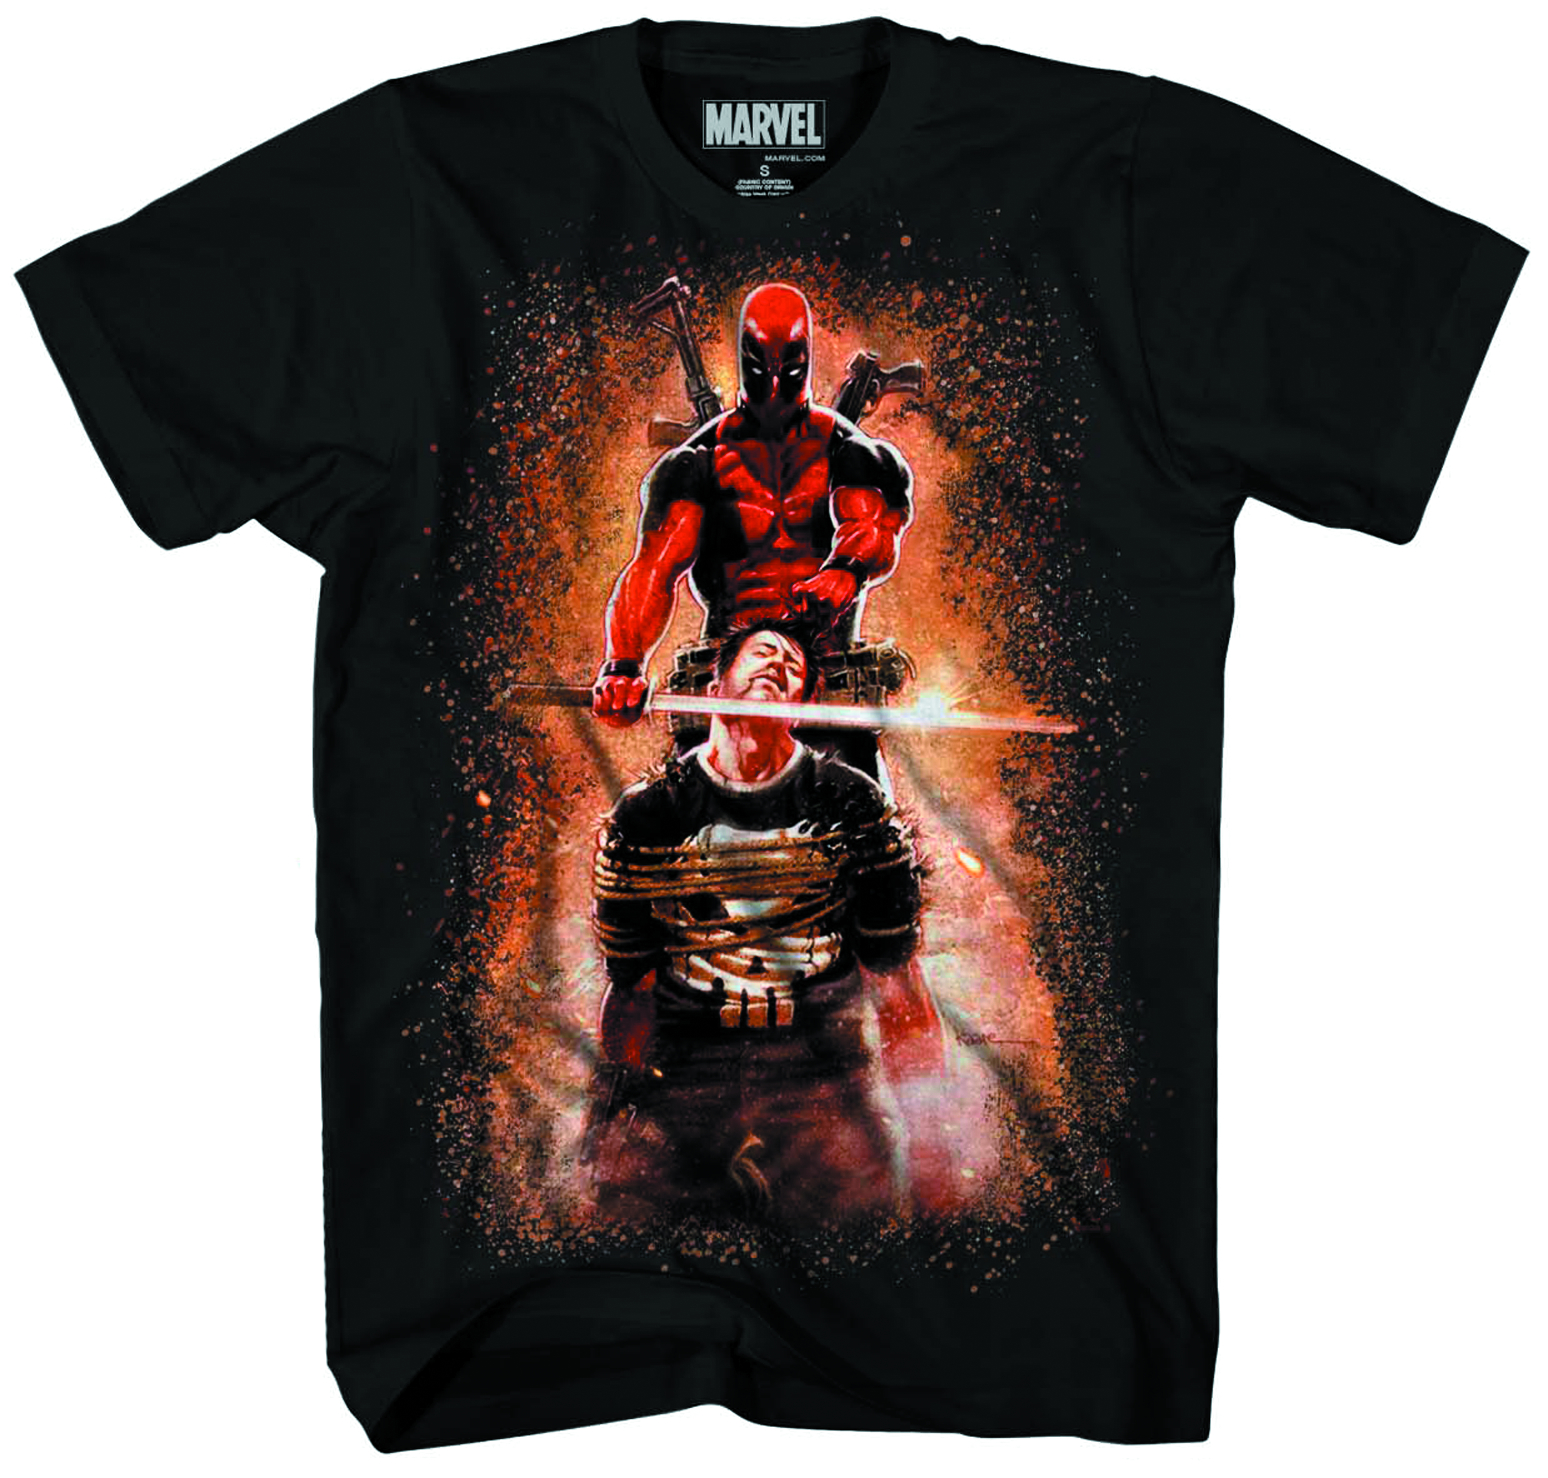 DEADPOOL CRUMBLING CASTLE PX BLK T/S XL